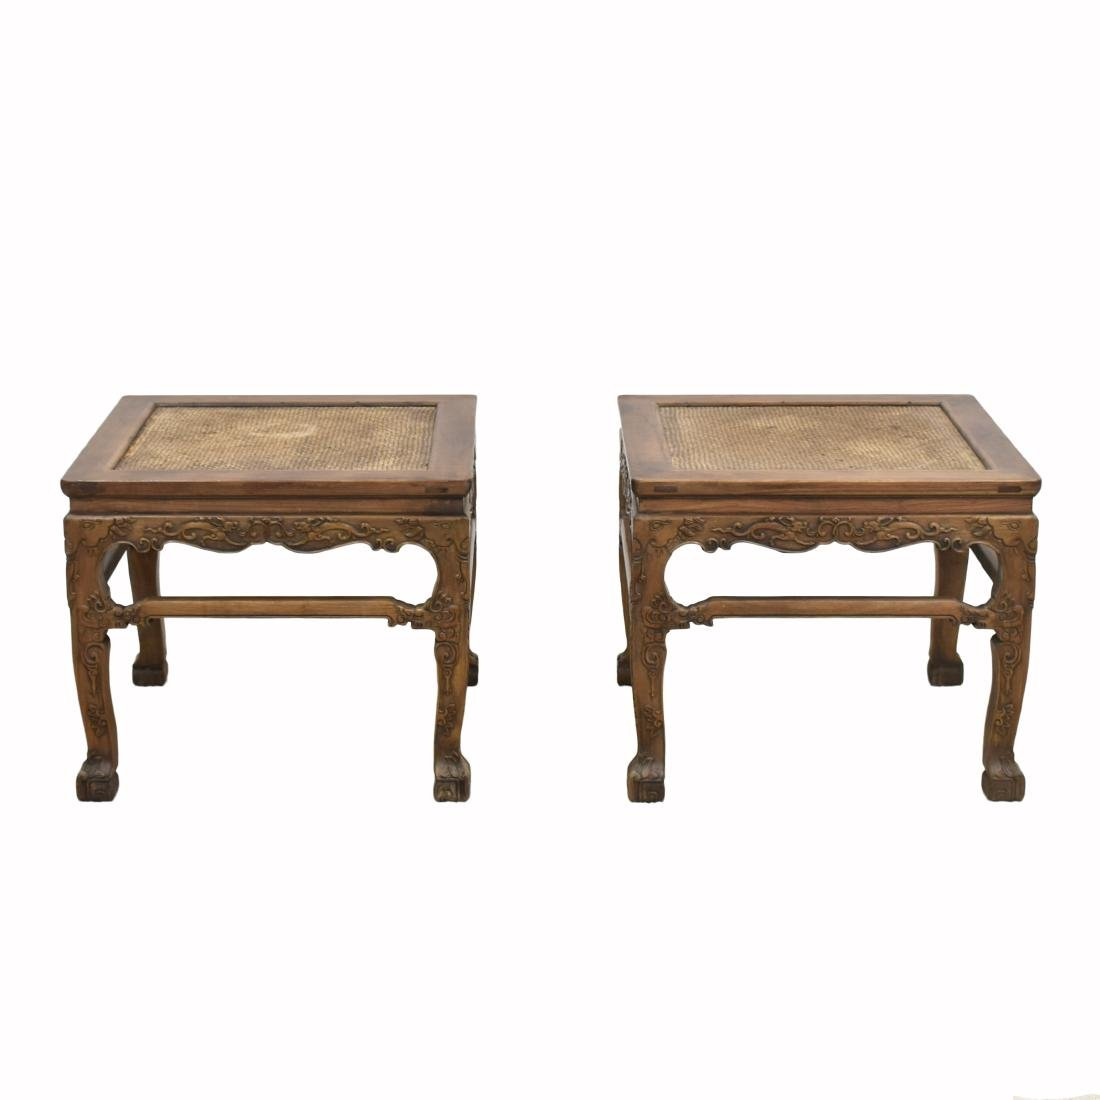 18/19TH C PAIR CHINESE HUANGHUALI LOW CHAIRS